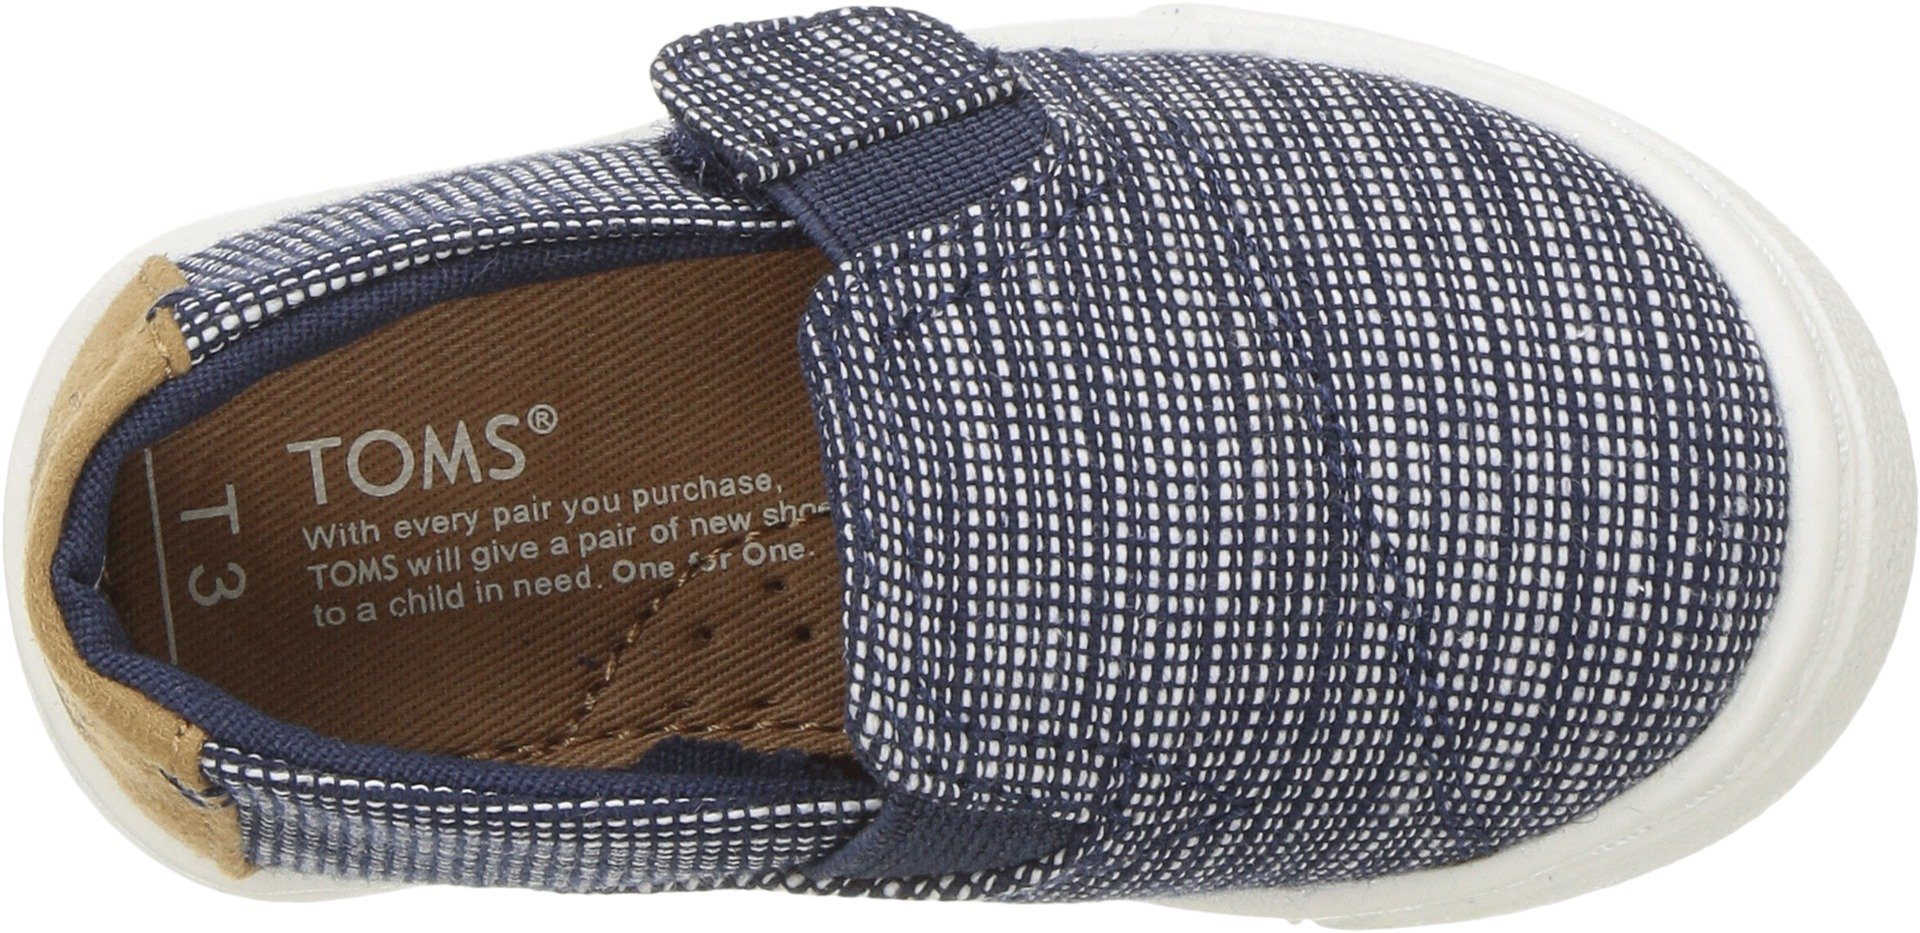 TOMS Kids Unisex Luca (Infant/Toddler/Little Kid) Navy Striped Chambray 10 M US Toddler by TOMS Kids (Image #2)